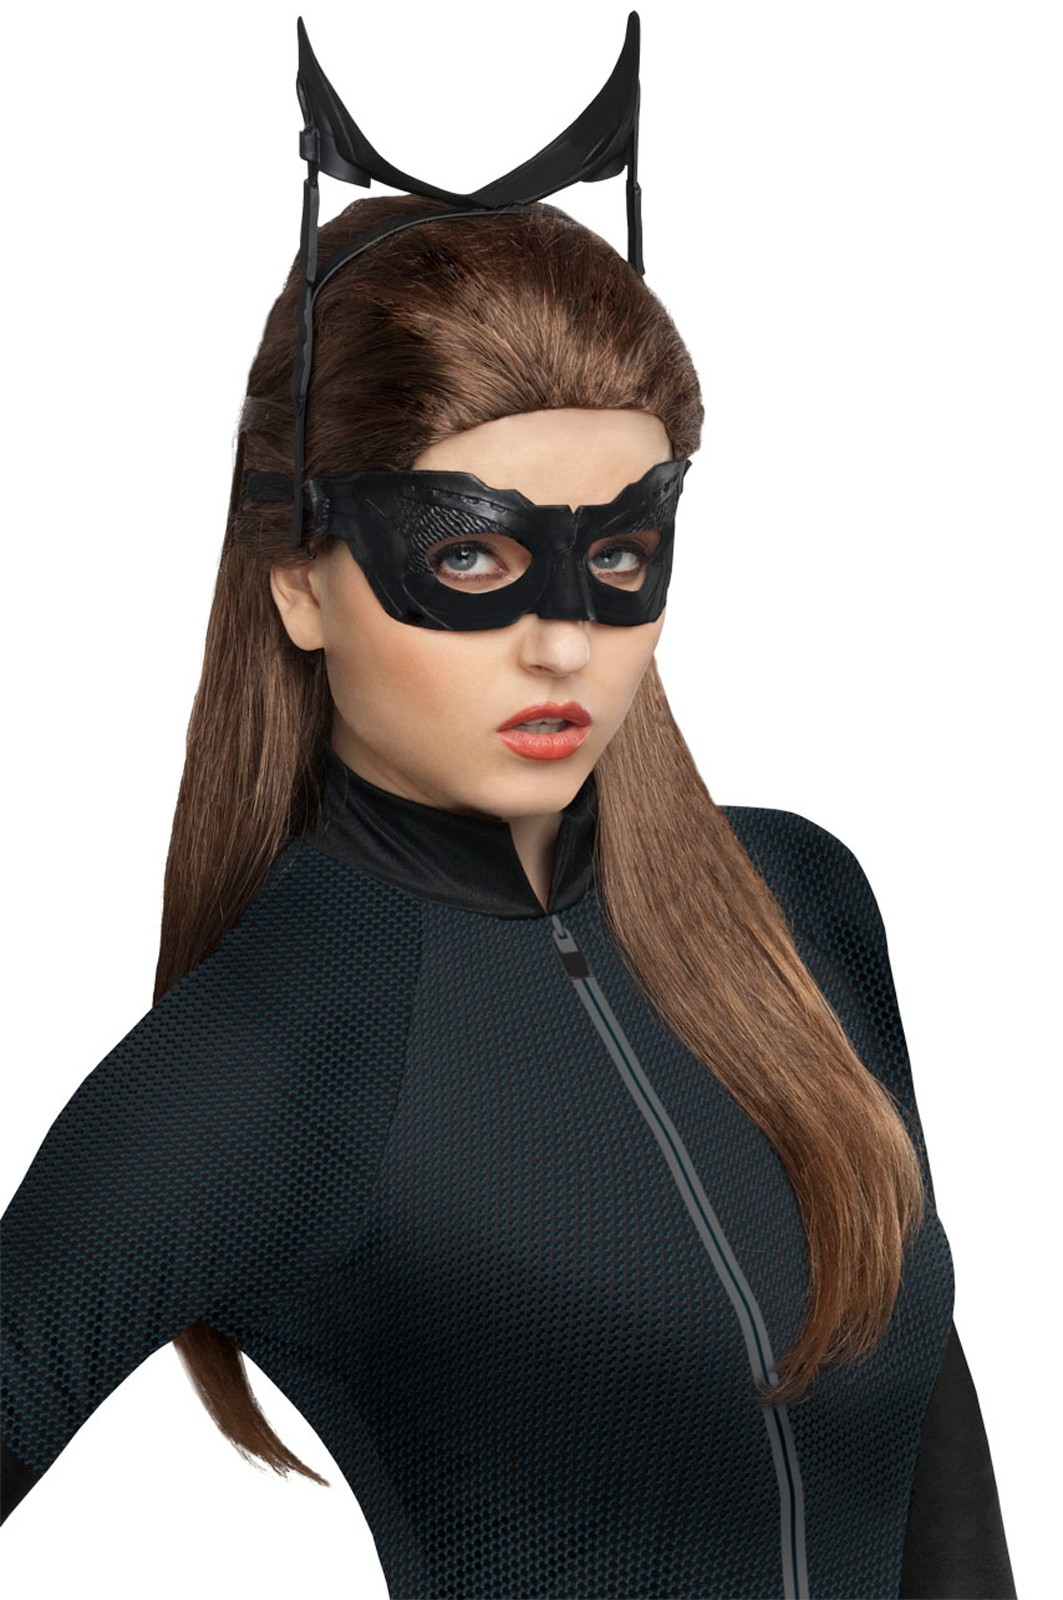 Batman The Dark Knight Rises - Catwoman Adult Womenu0027s Costume Wig.jpg  sc 1 st  Costumes.com.au & Batman The Dark Knight Rises - Catwoman Adult Womenu0027s Costume Wig ...